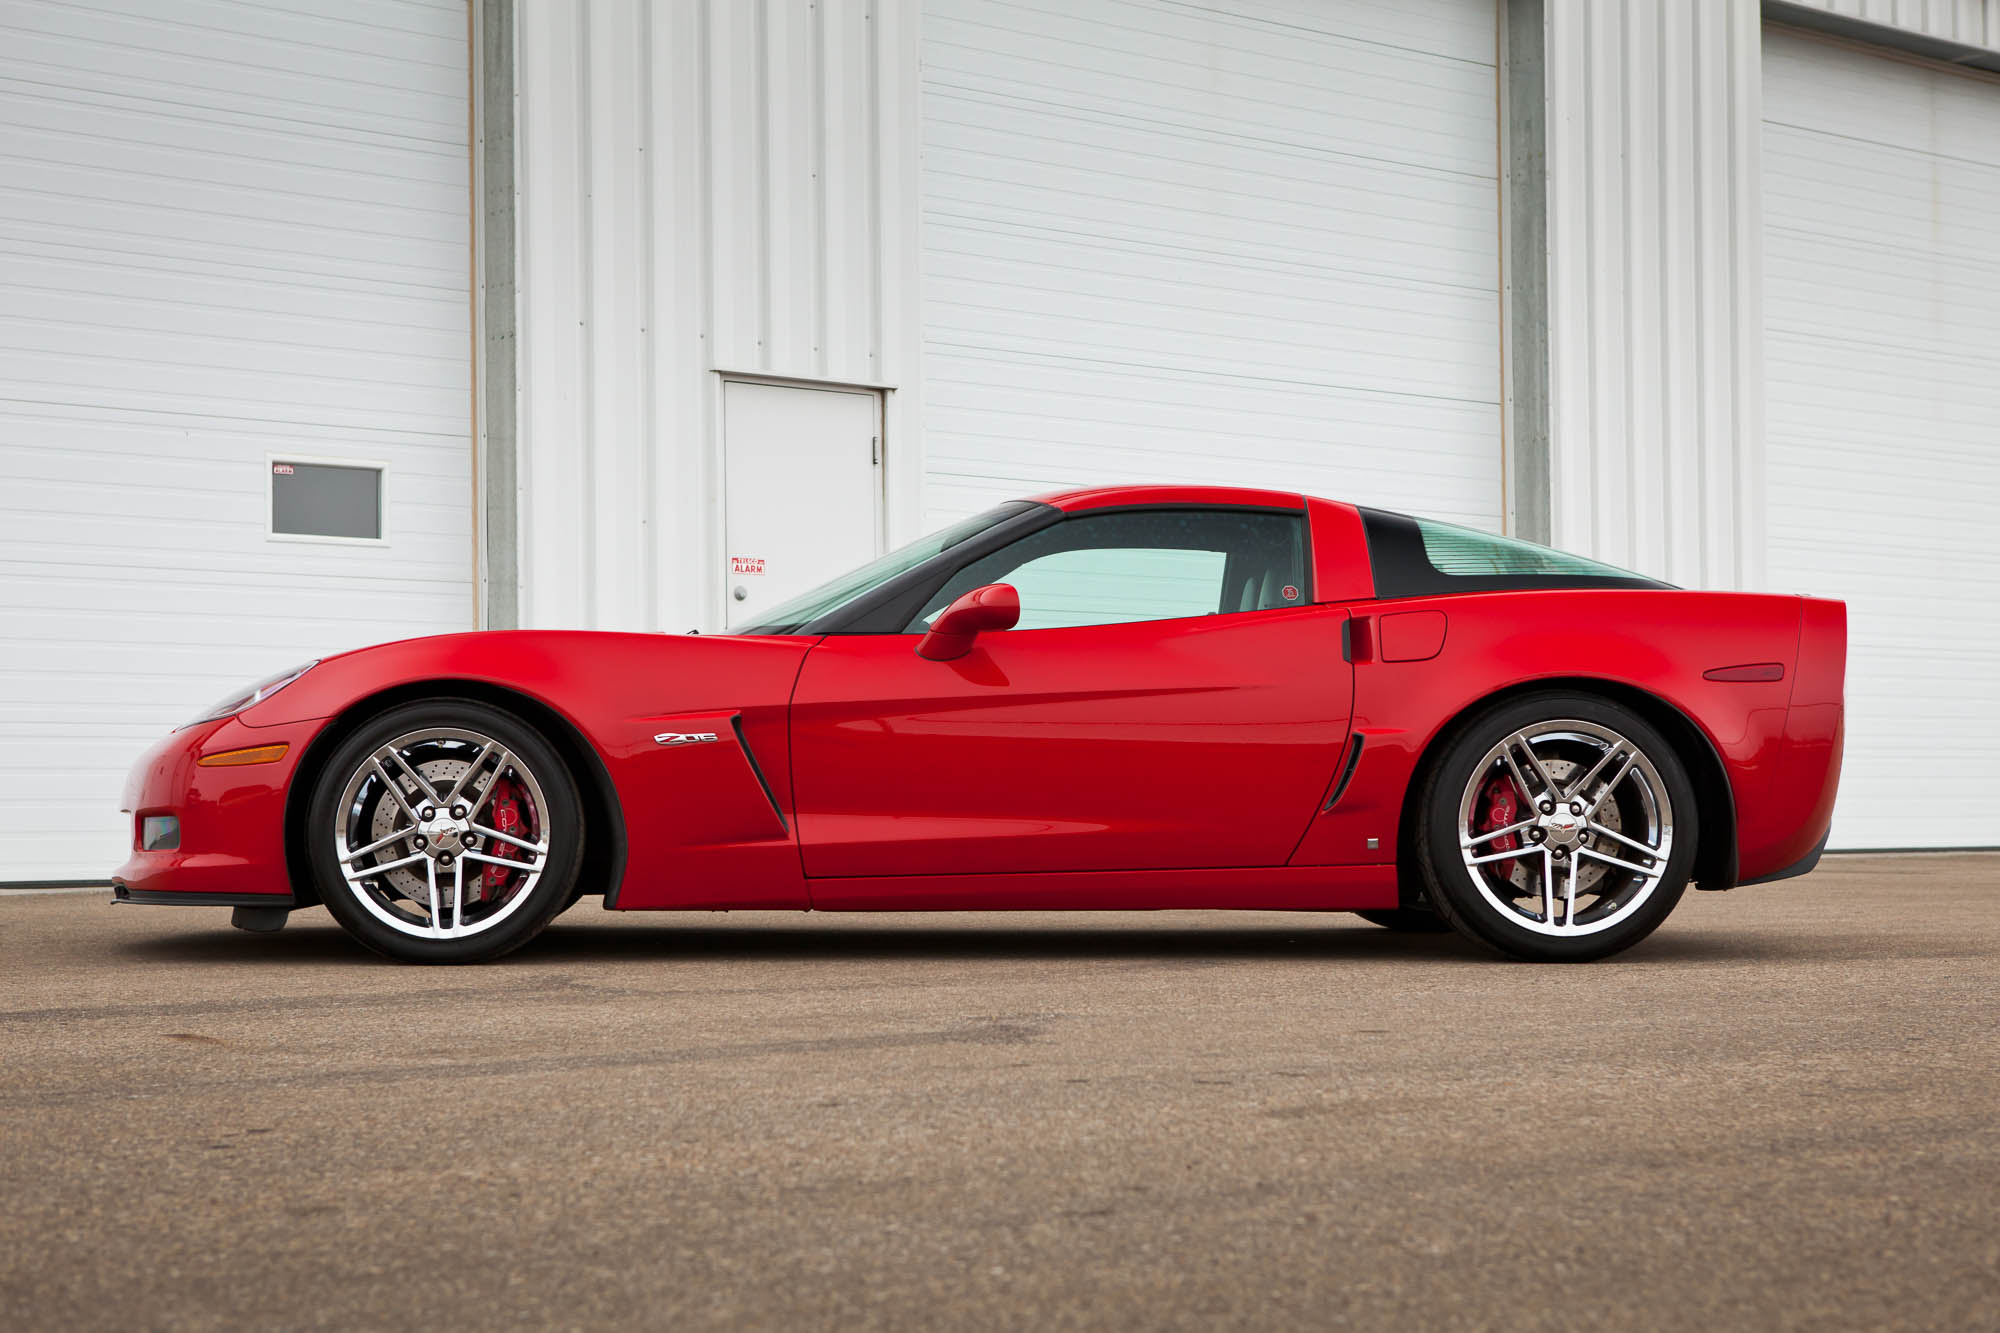 Corvette For Sale >> 2009 Corvette Z06 - Sold - The Iron Garage